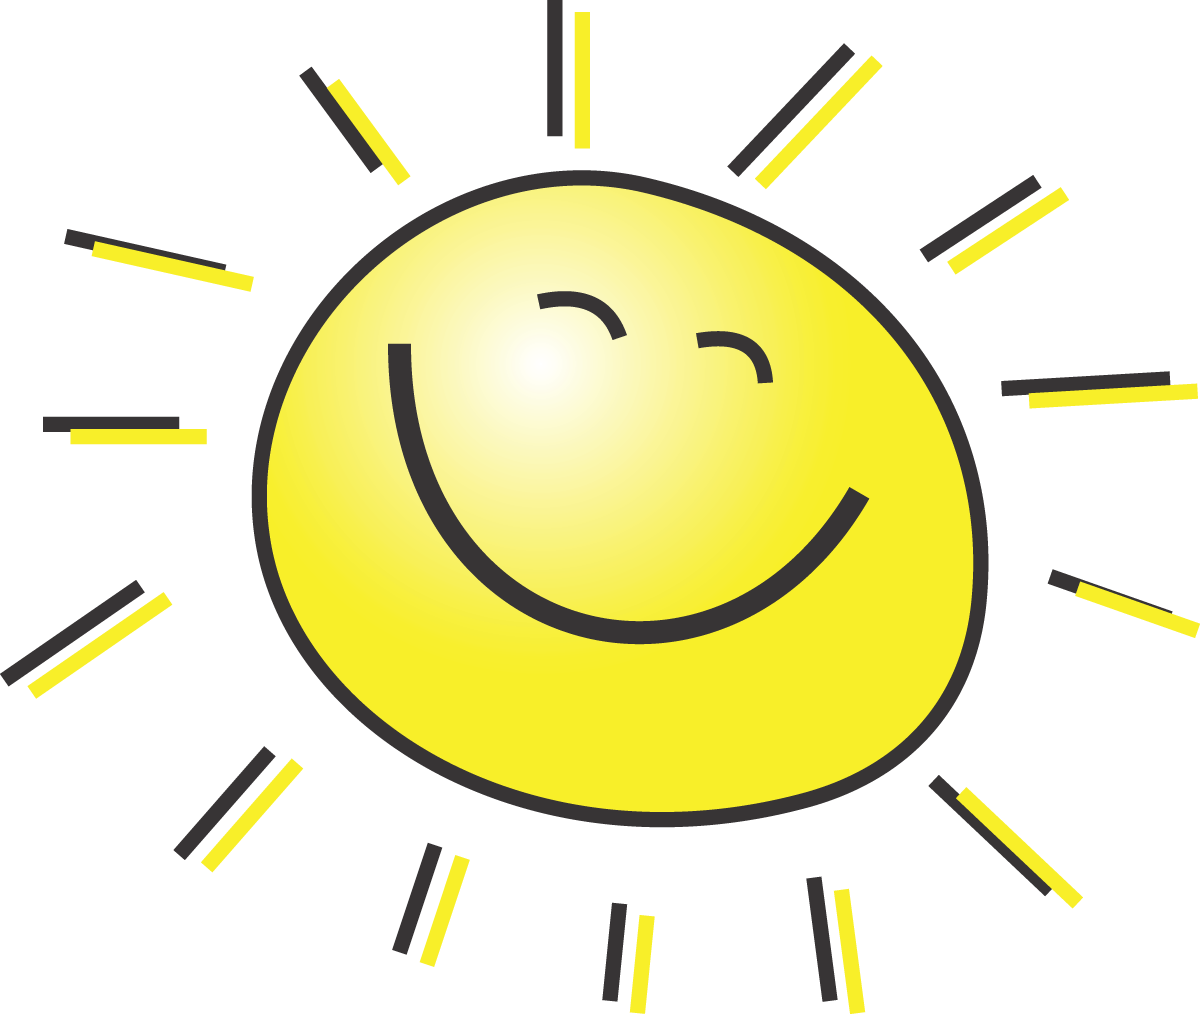 Free Summer Clipart Illustration Of A Happy Smiling Sun.